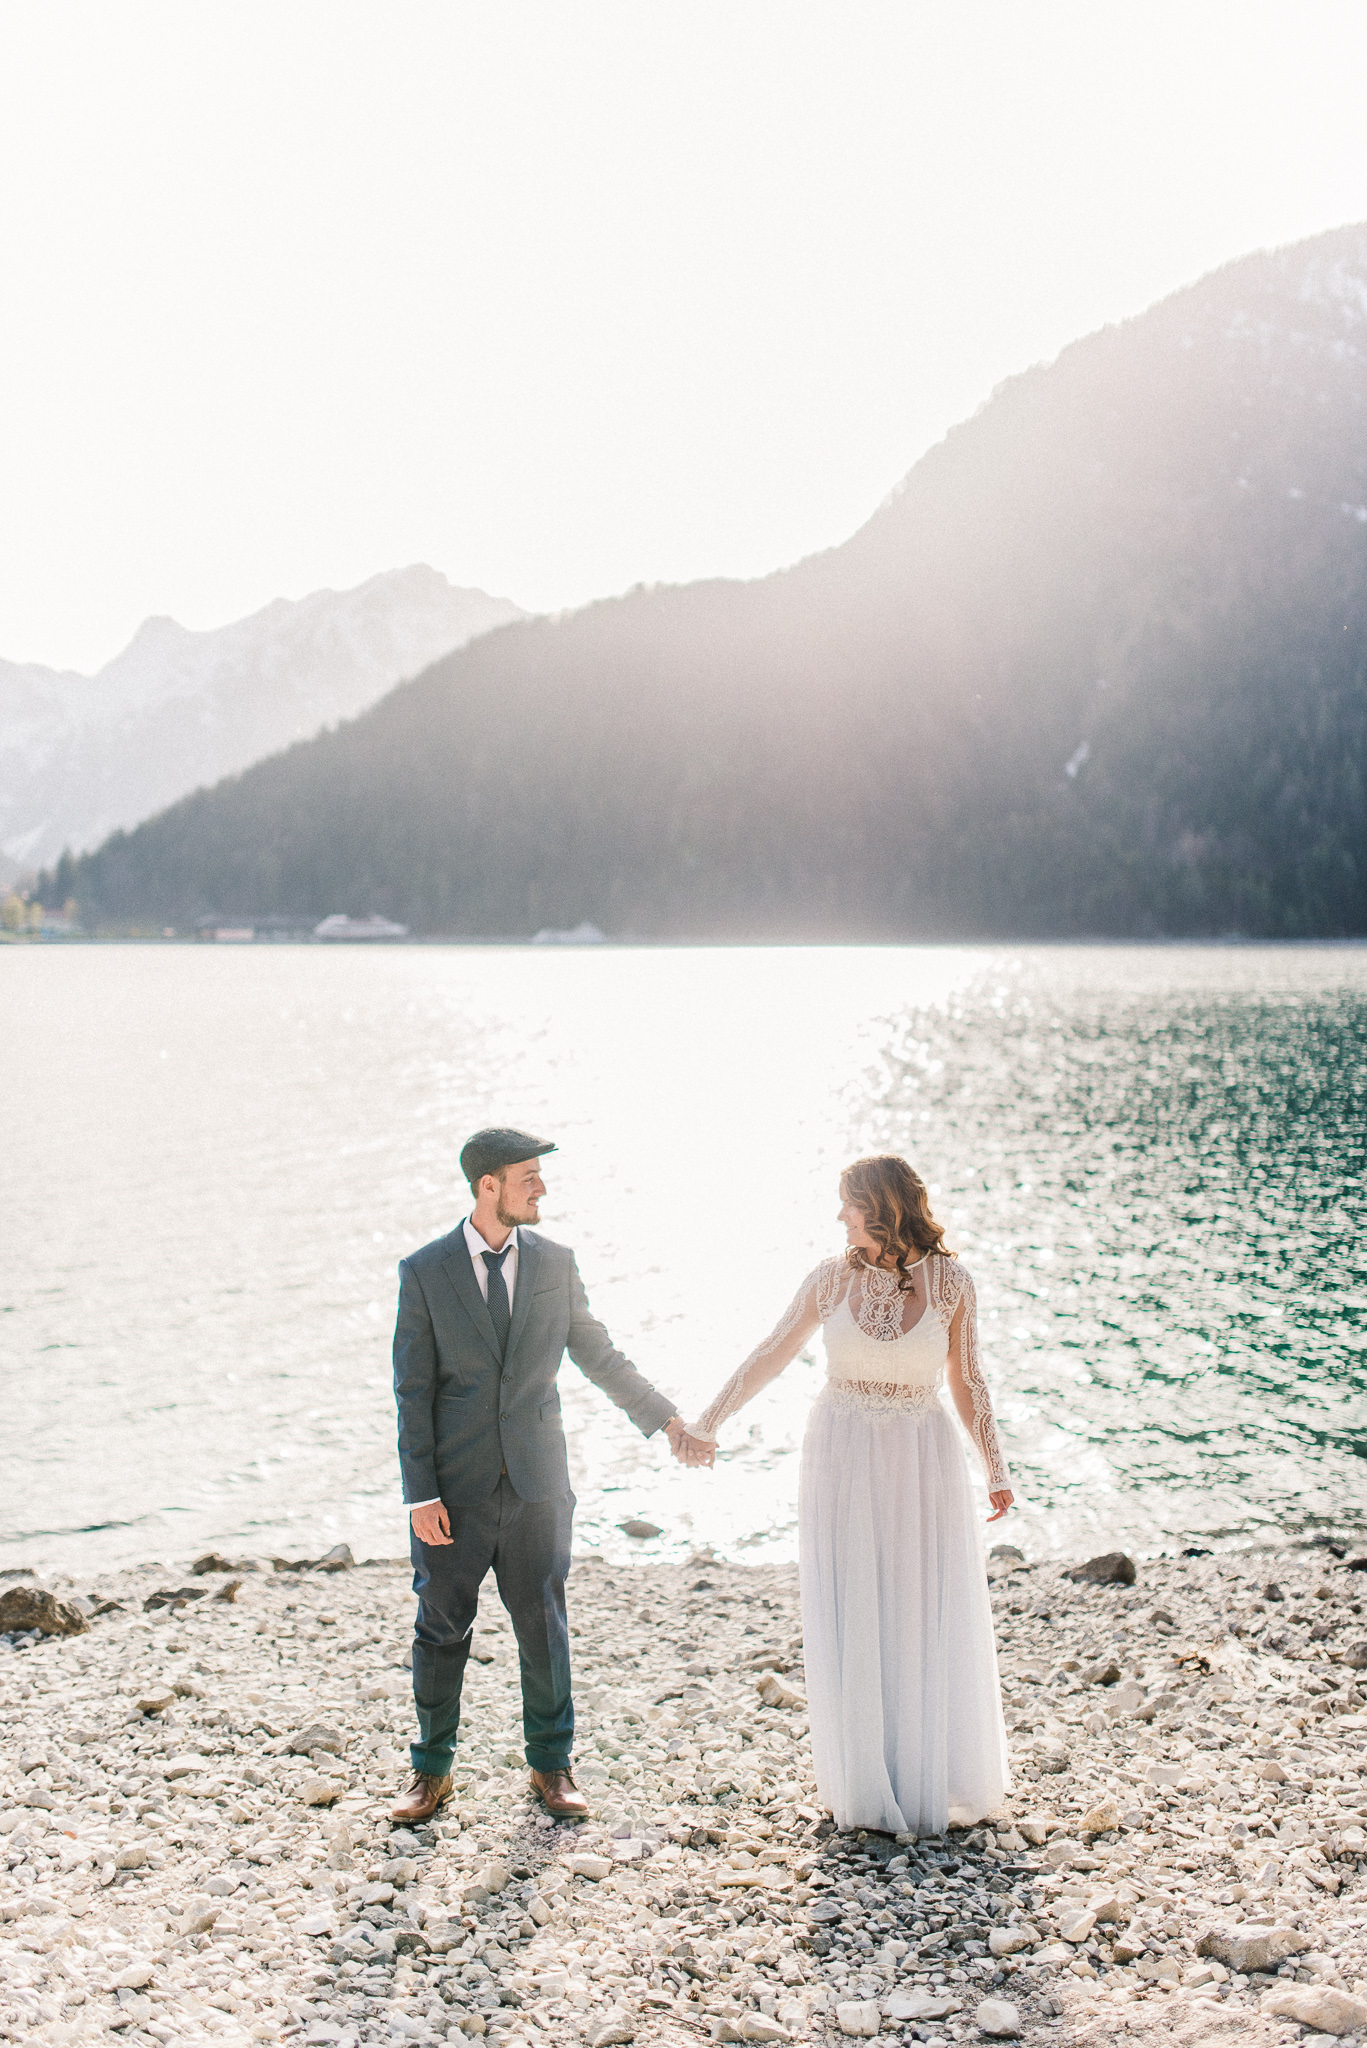 Adelia + Thomas | Part Two: The Elopement | Adventurous Destination Elopement Photography at Achensee in Tyrol & Innsbruck, Austria | Travel Wedding Photographers in Indianapolis